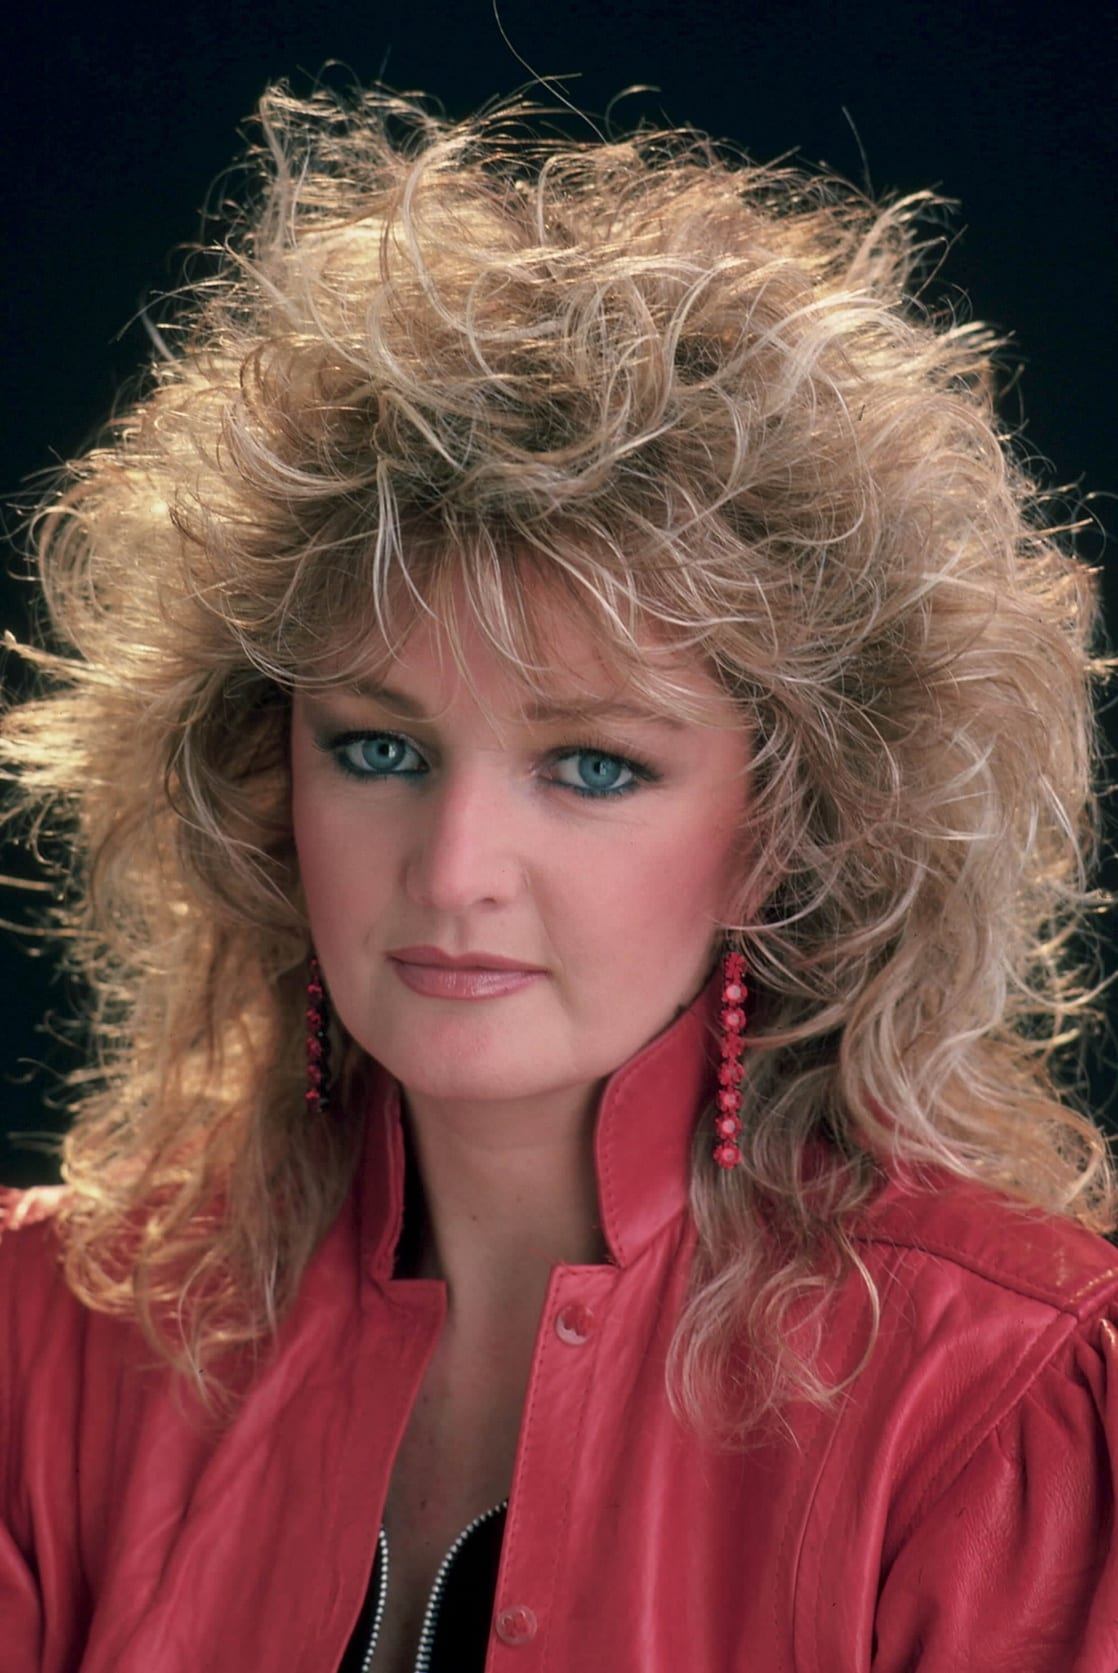 bonnie tyler - photo #22